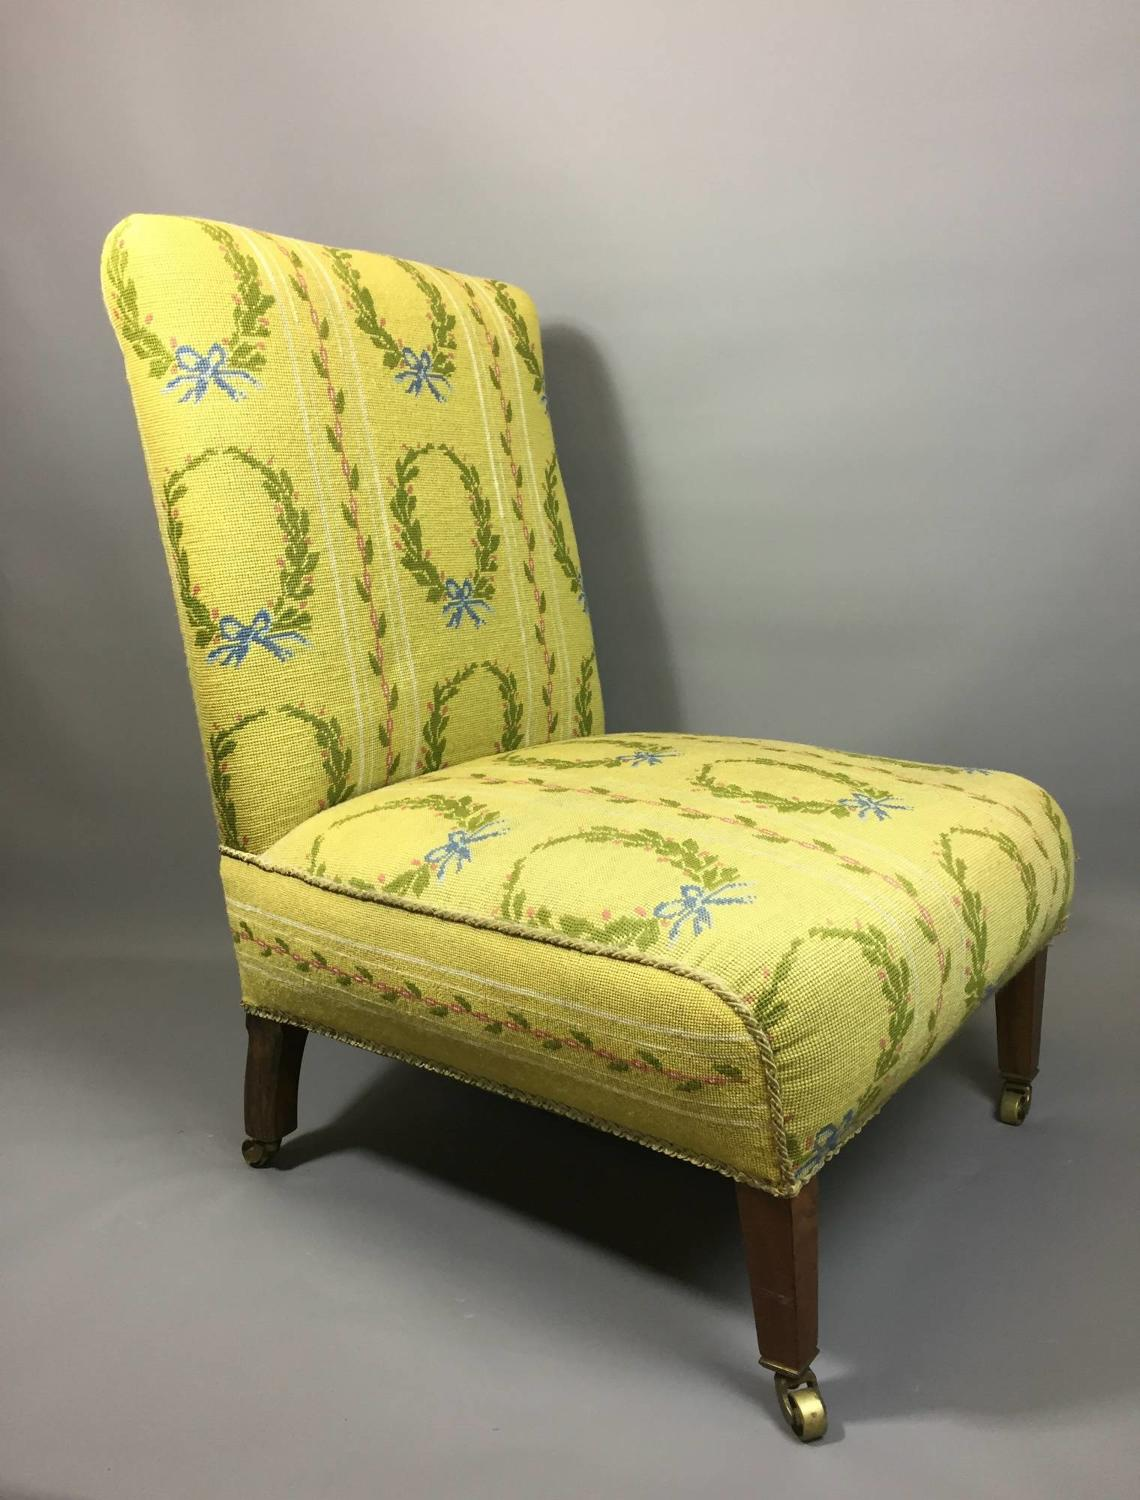 Antique Needlework Upholstered Slipper Chair